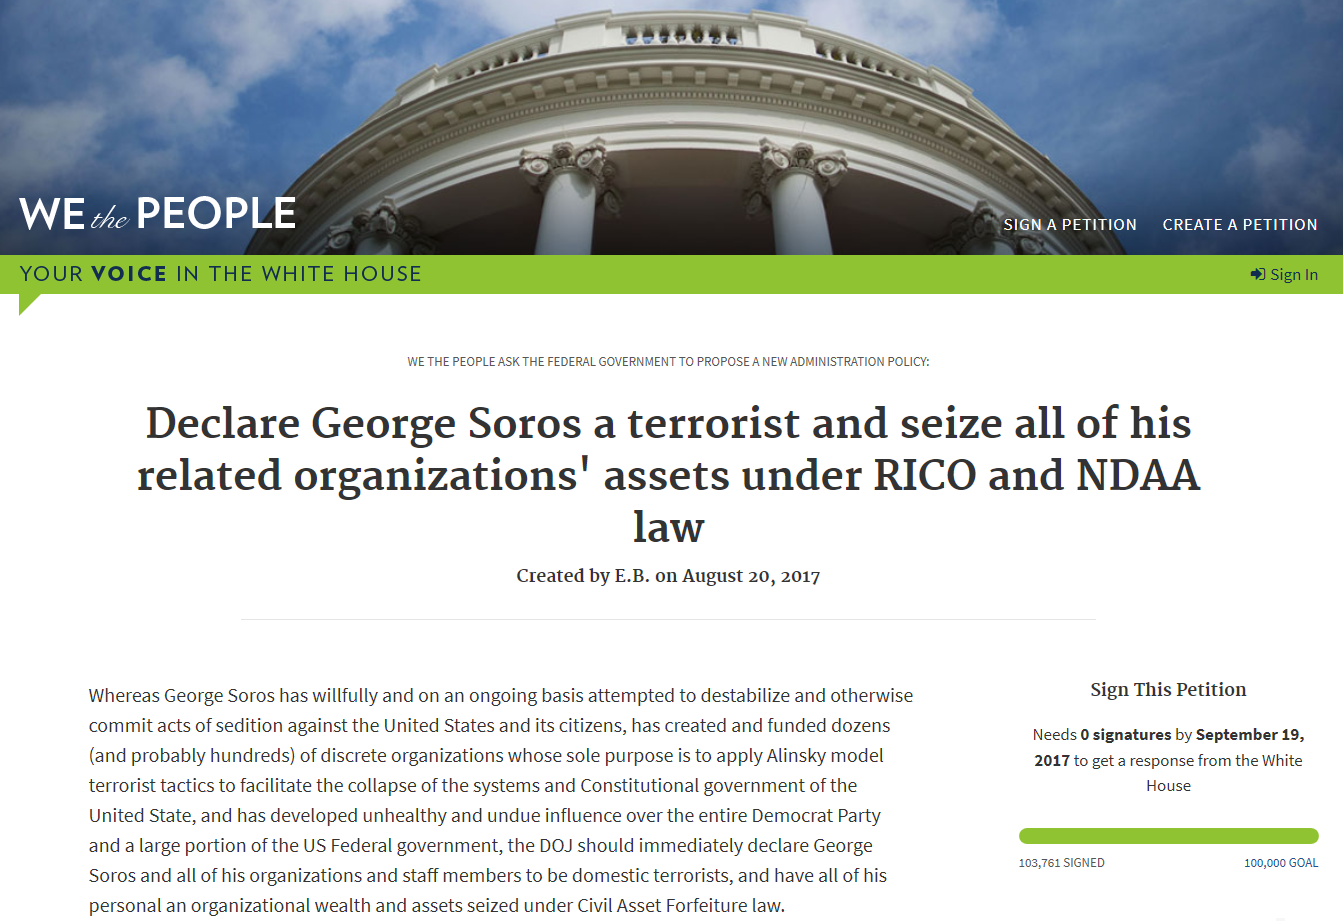 Declare George Soros a terrorist and seize all of his related organizations' assets under RICO and NDAA law